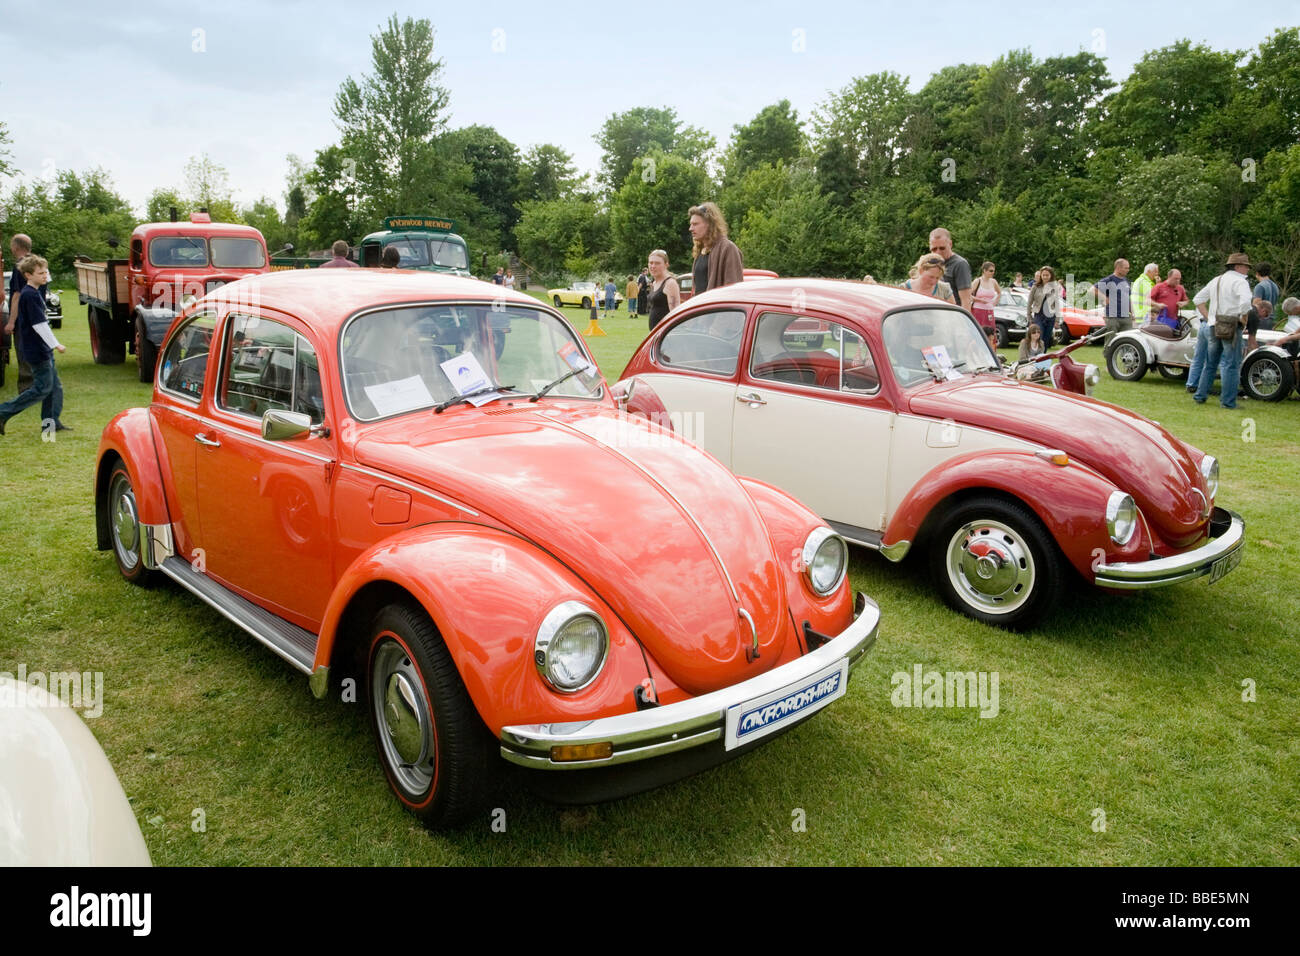 A pair of Volkswagon Beetles on display at Wallingford Classic car Rally, Oxfordshire, UK - Stock Image